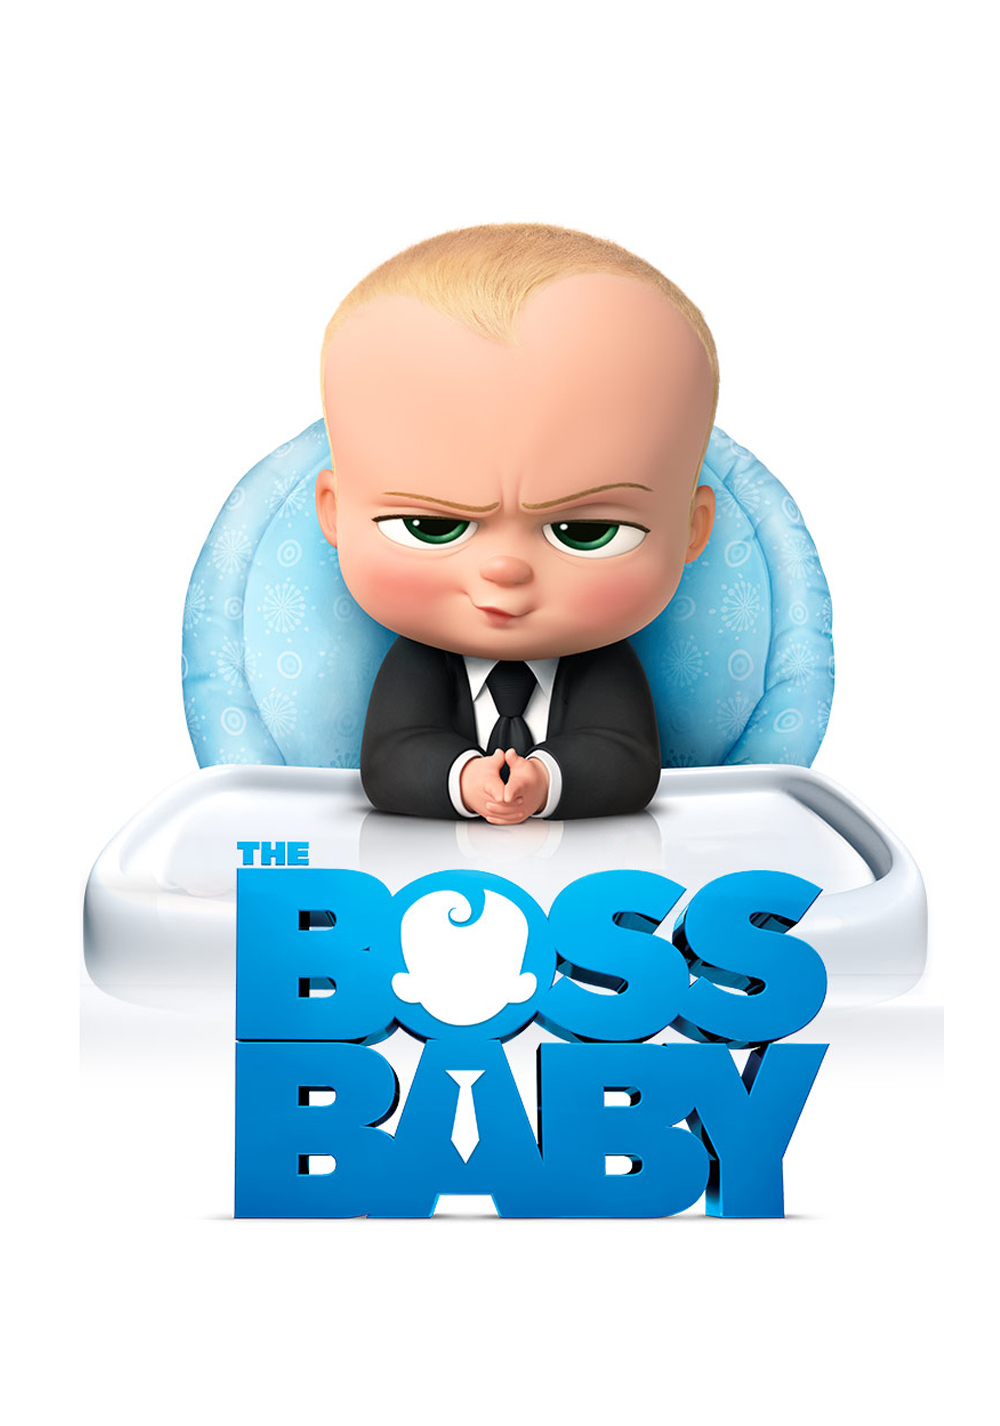 THE BOSS BABY  (PG)   12:45  2:50 4:55  7:15  9:35    Family film/Comedy ‧ 1h 36m